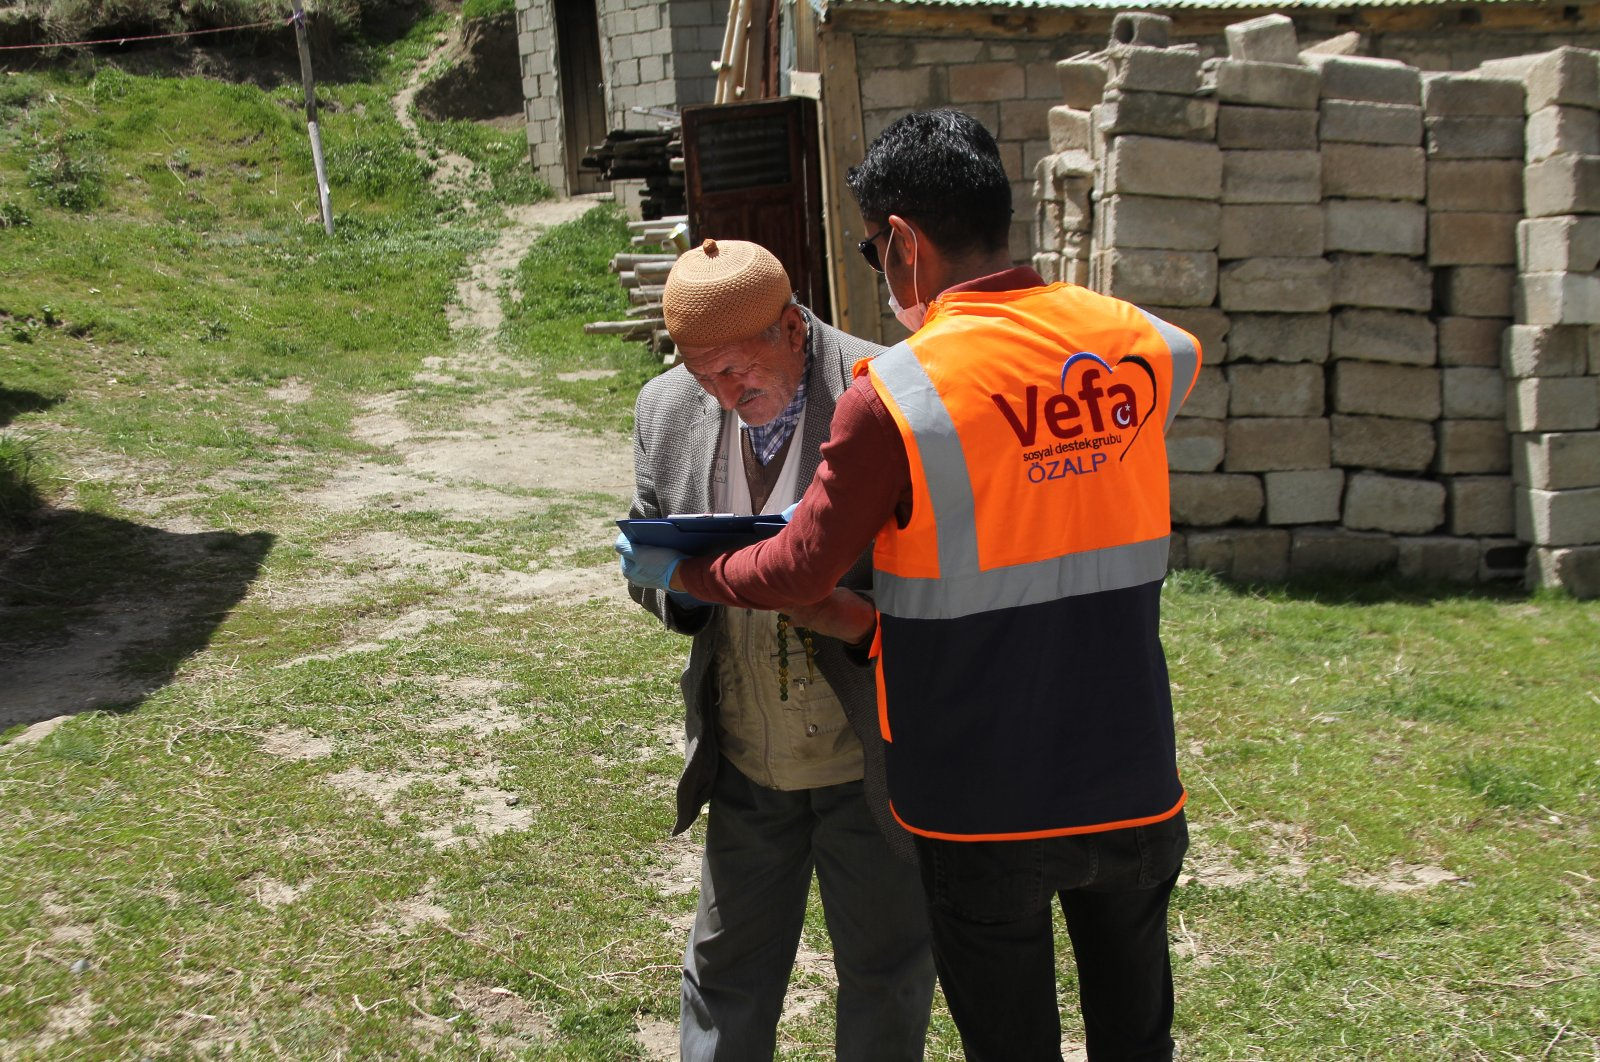 A Vefa Social Support Group volunteer distributes aid to an old man, Van, May 18, 2020. (AA)